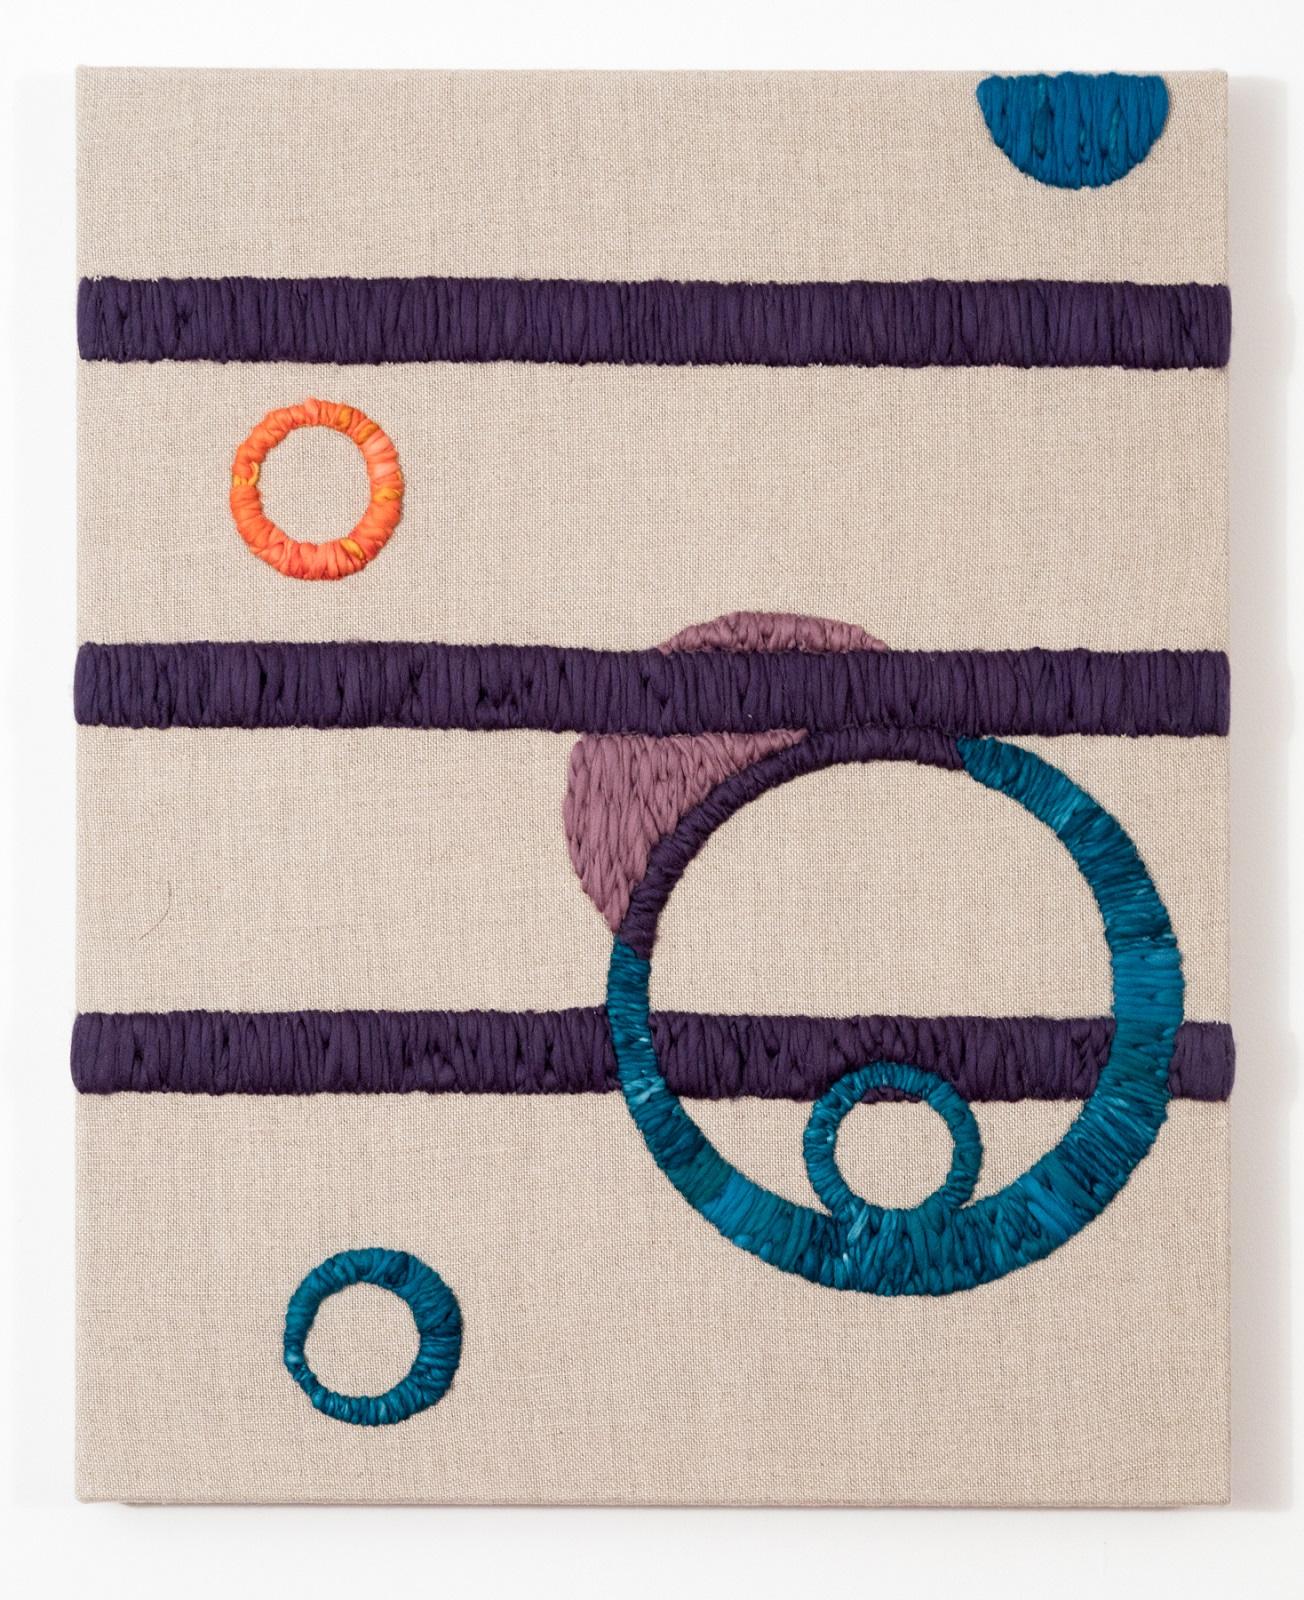 System 12 2017 Wool and Linen 30 x 24 inches Donovan Collection